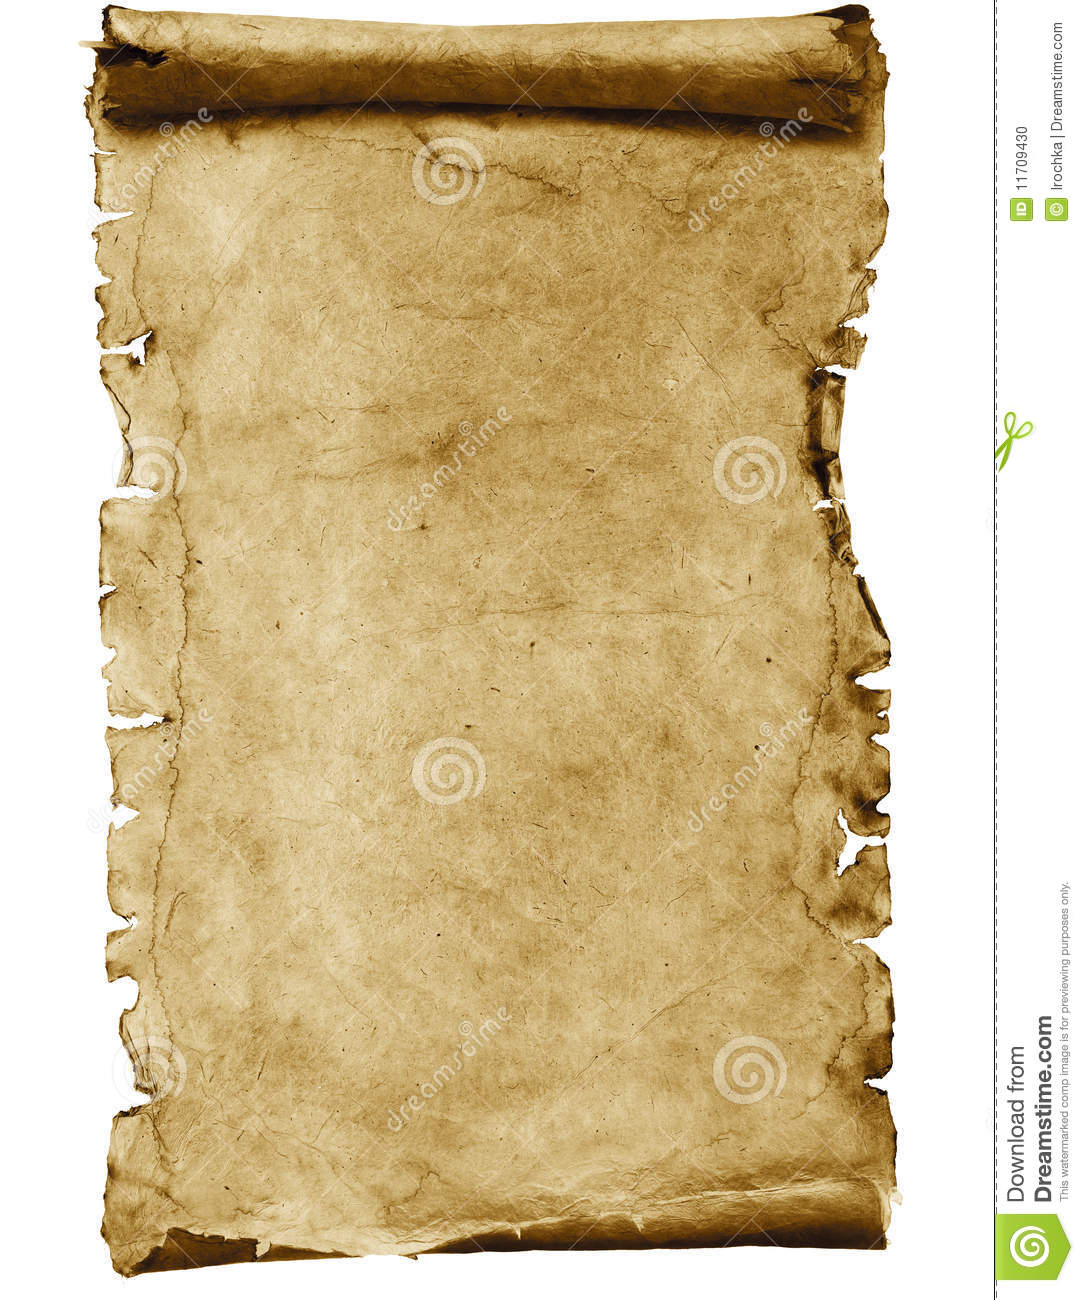 Ancient Scroll: Blank Parchment Scroll Stock Photo